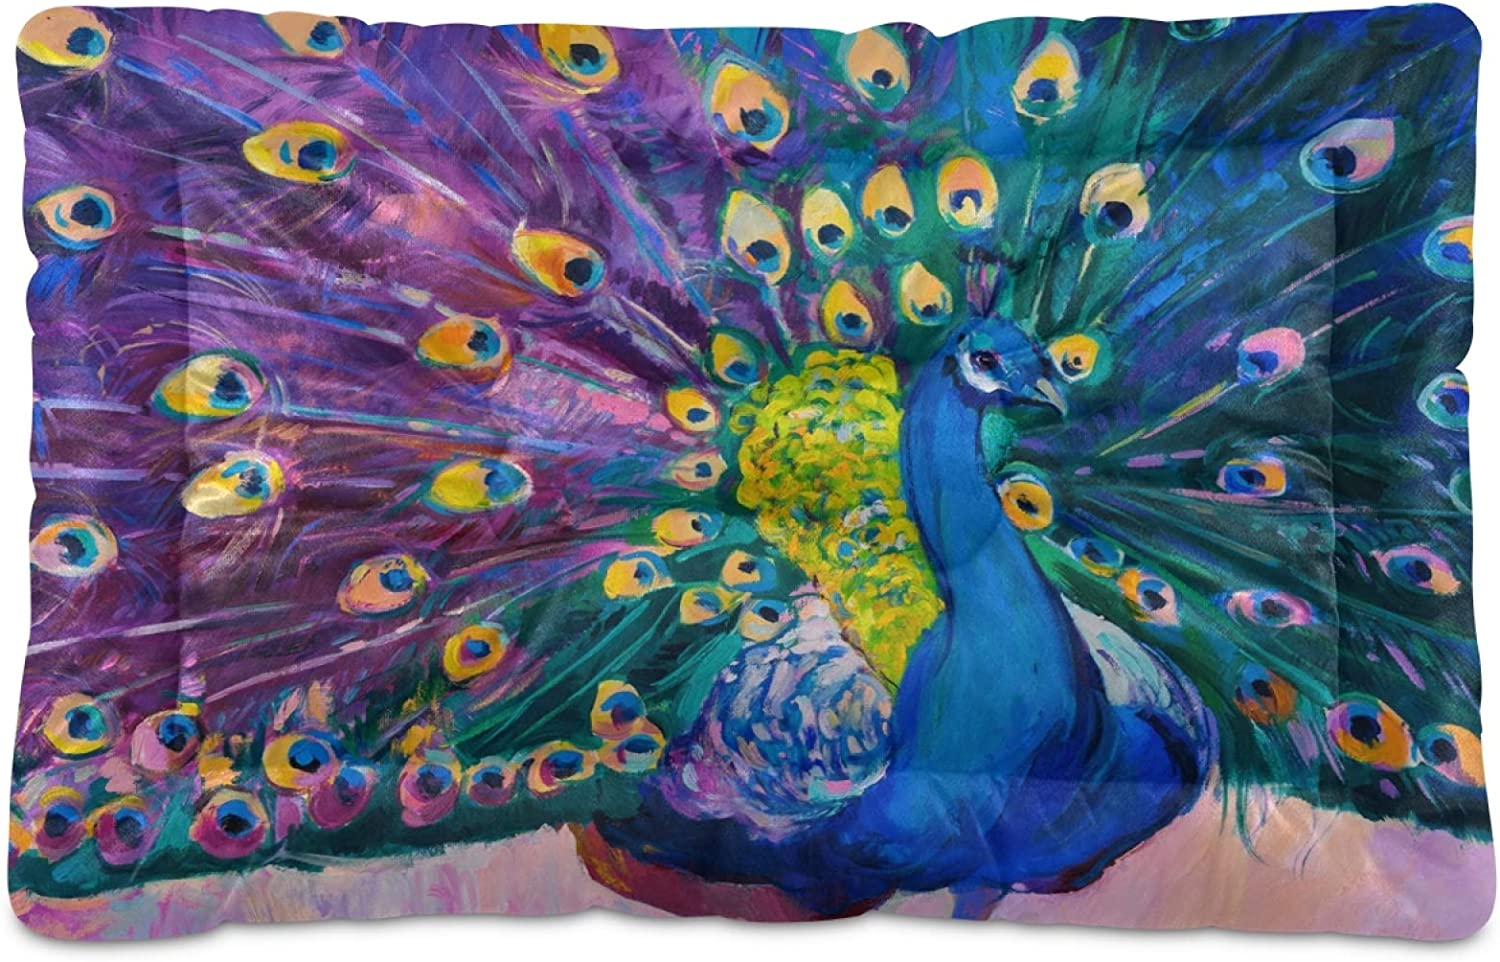 KEEPREAL Online limited product Peacock Oil Painting Dog Comfort Cat Rectangle Bed Oklahoma City Mall